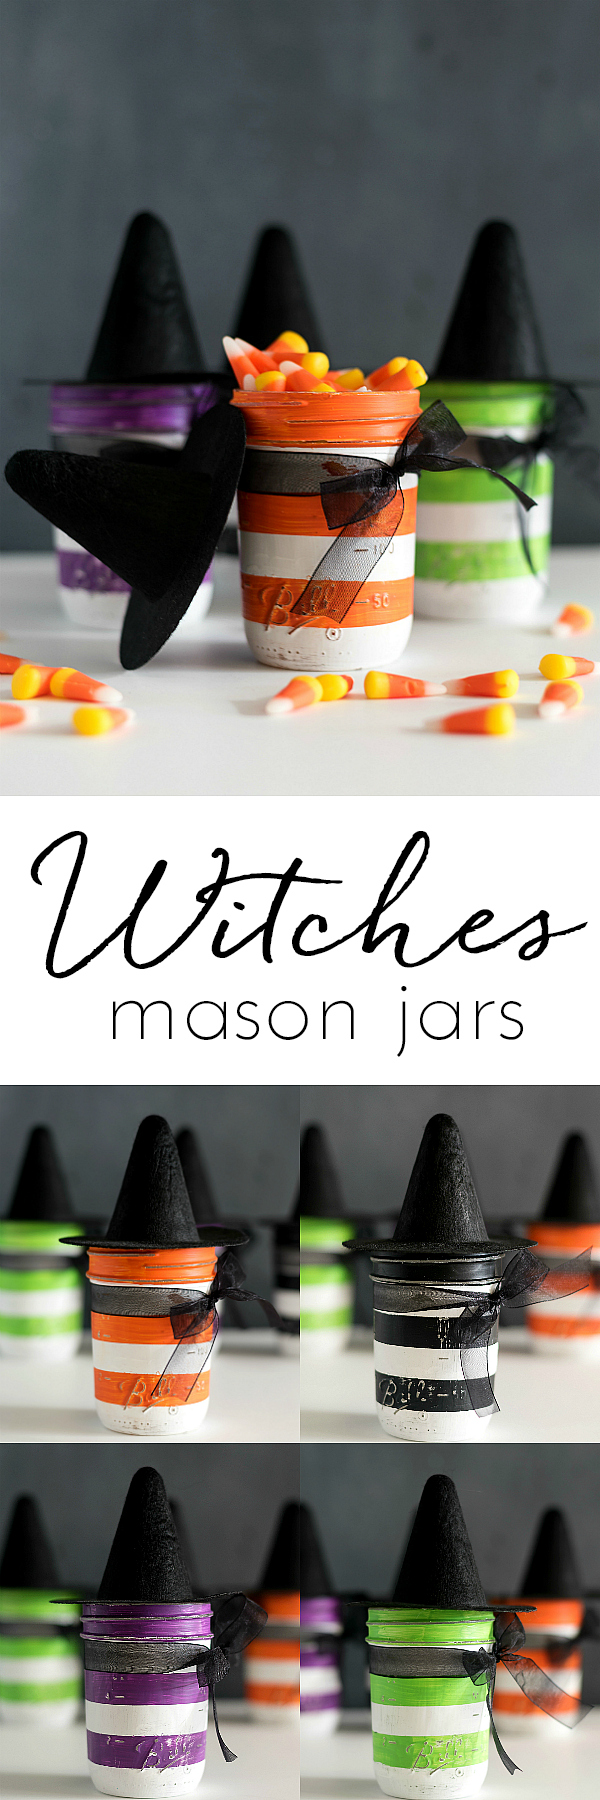 Witch Mason Jars - Witches Mason Jars - Halloween Mason Jars - Mini Witch Hat Mason Jars for Halloween - Mason Jar Crafts for Halloween @masonjarcraftslove.com